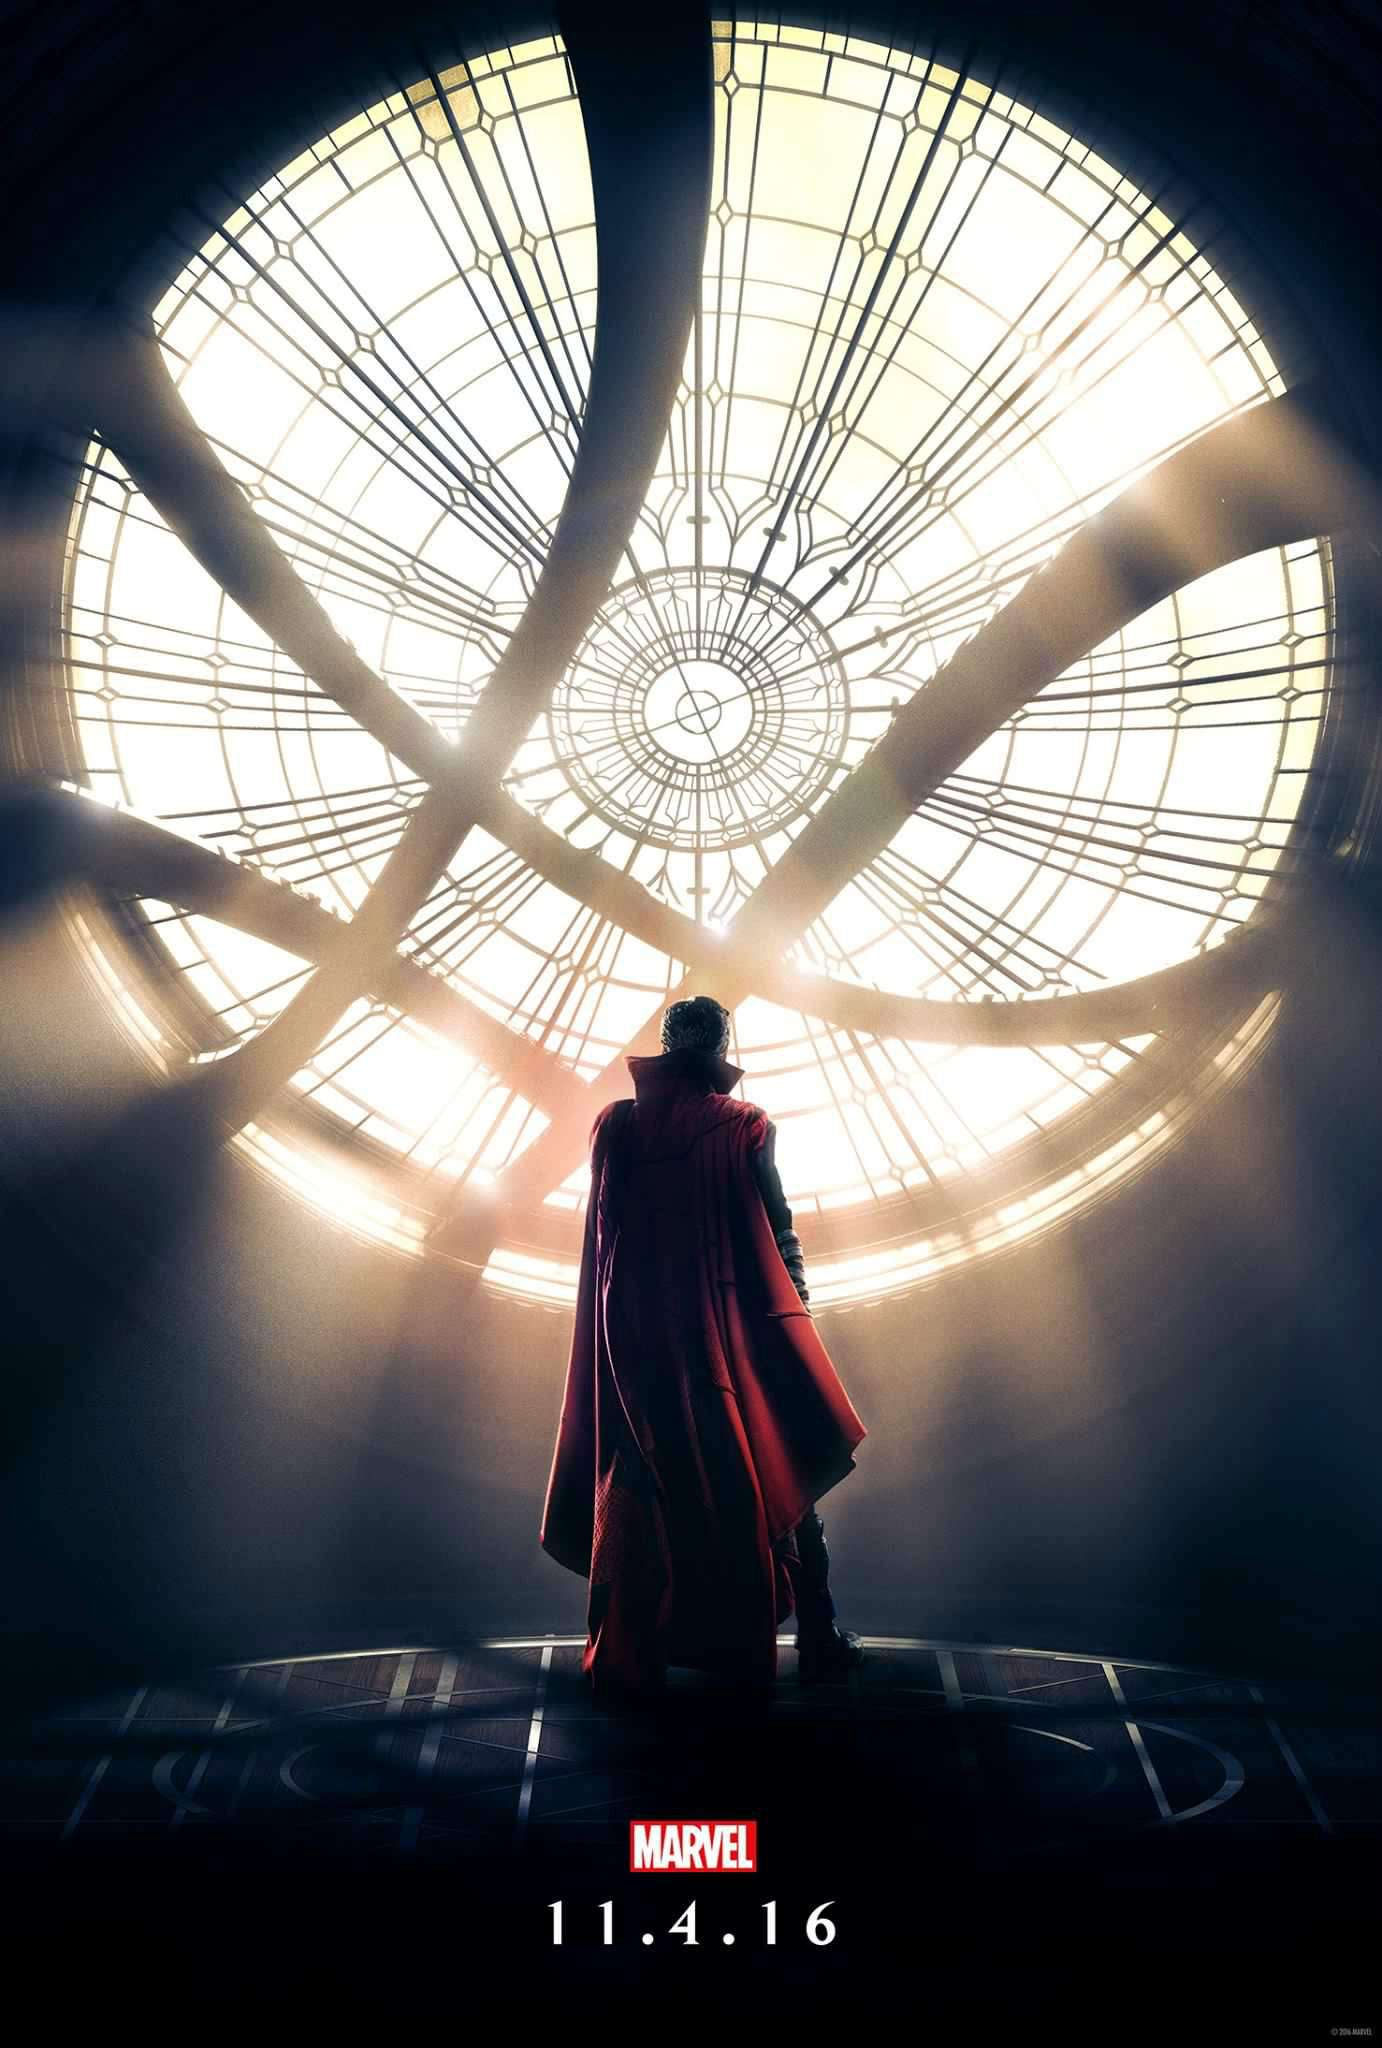 doctor-strange-marvel-movie-poster.jpg